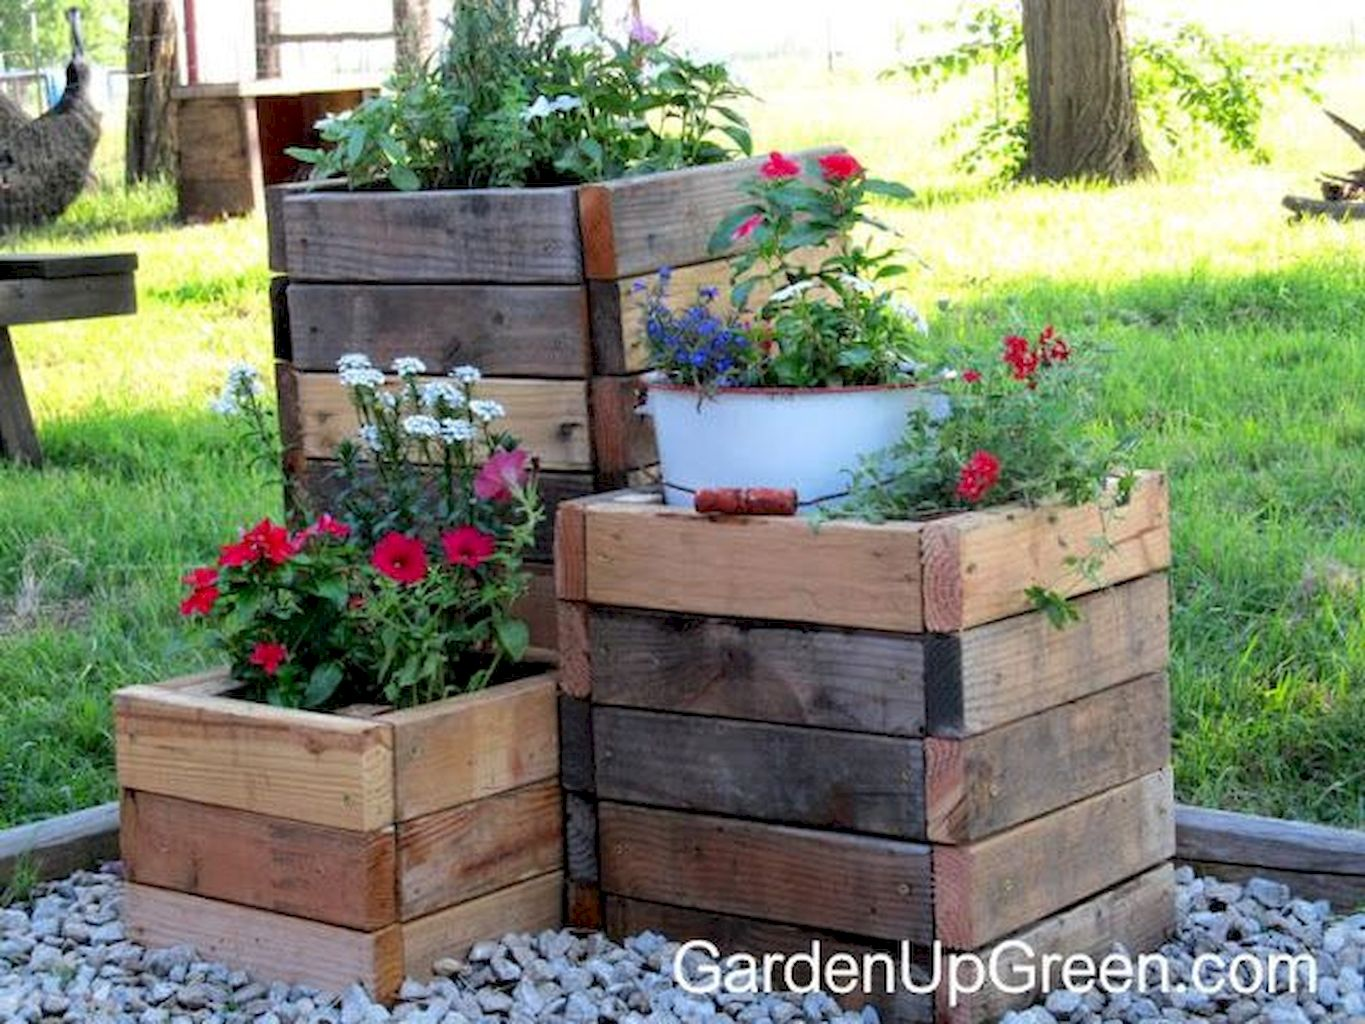 Creative Homemade Planter Boxes From Pallets Simple Diy Project